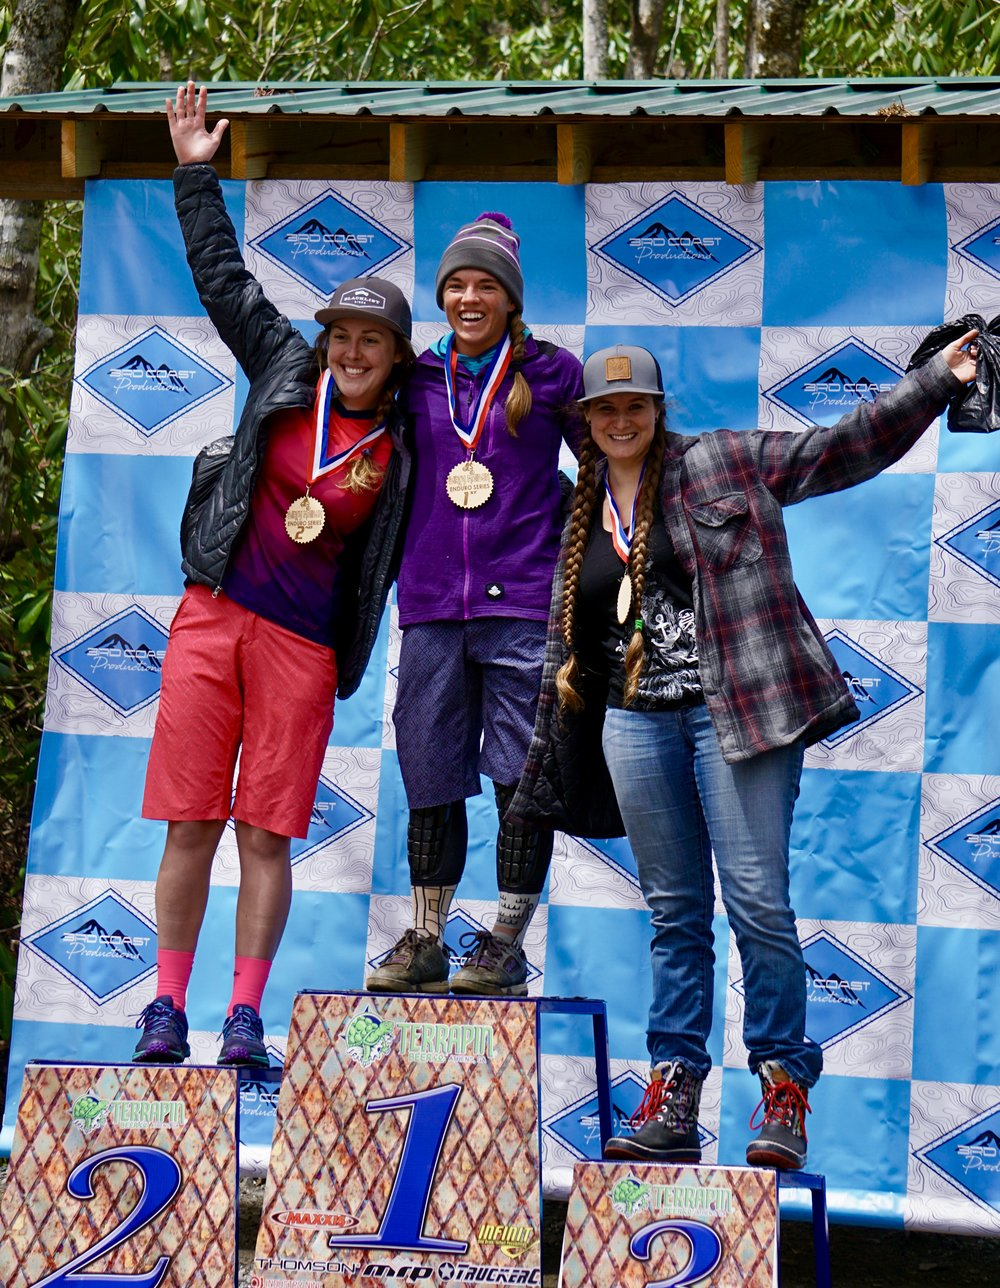 1st place   - Fire Mountain Womens' Enduro, NC